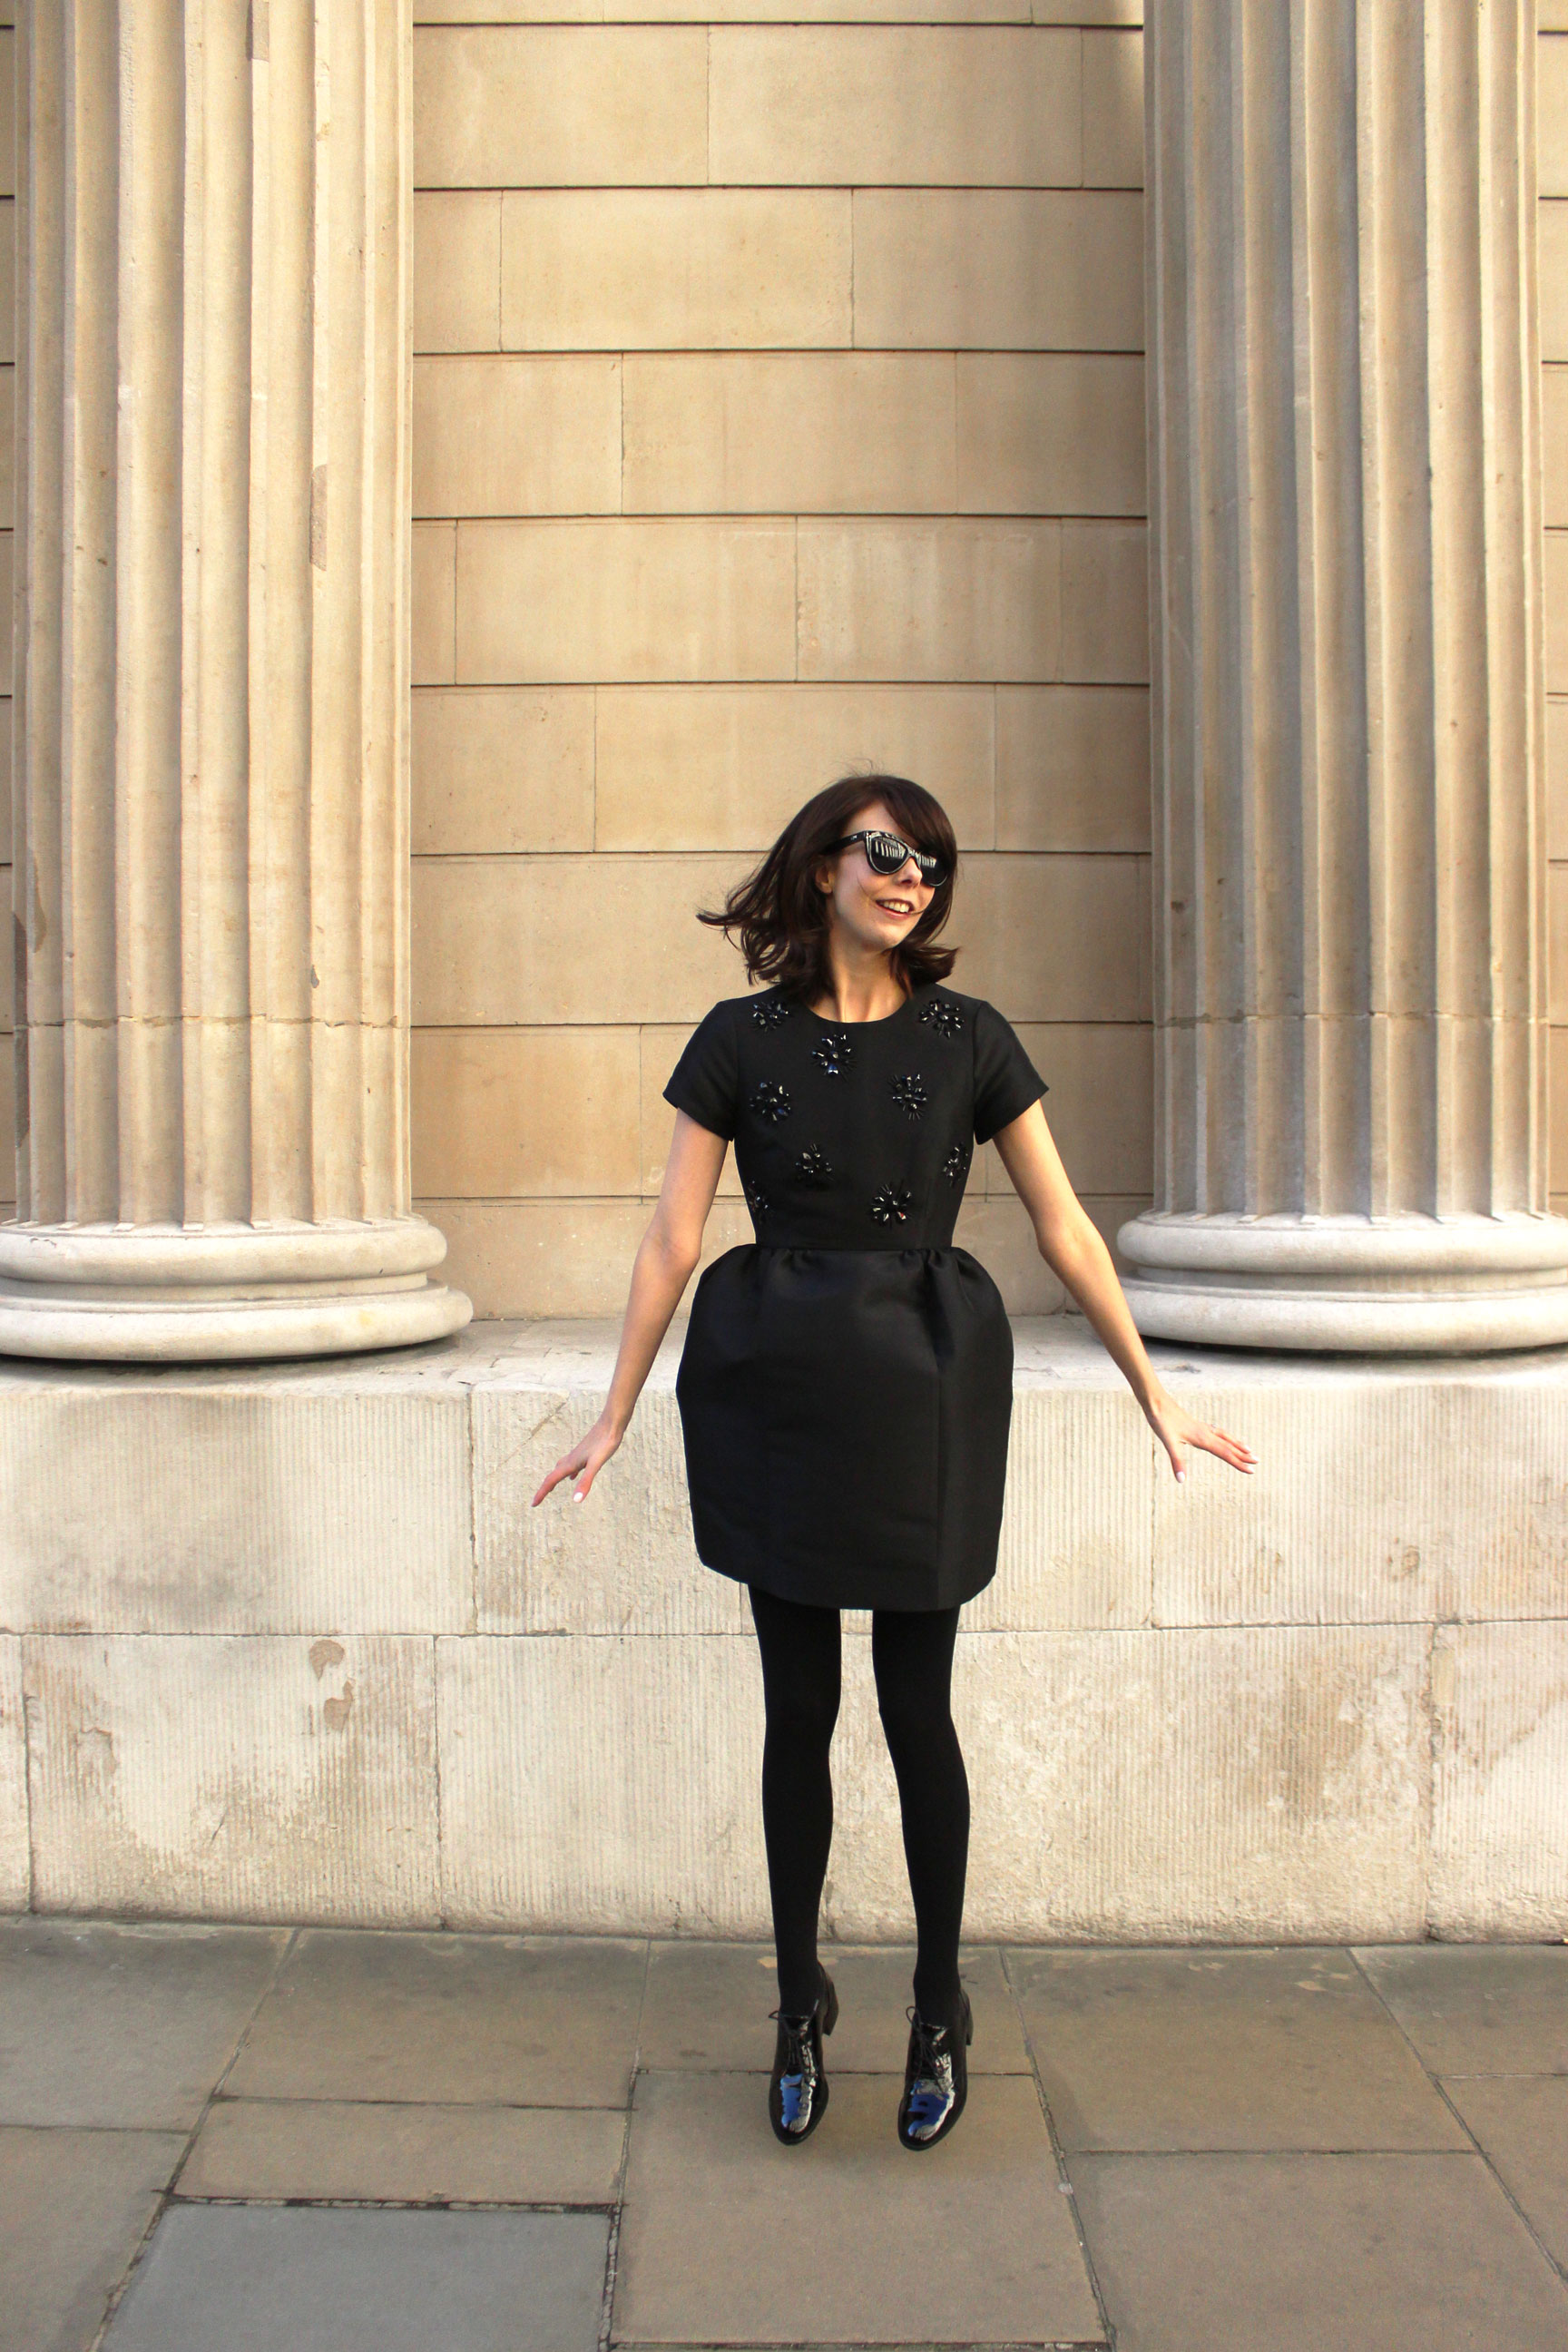 Jumping for joy in my favorite little black dress from Kate Spade.